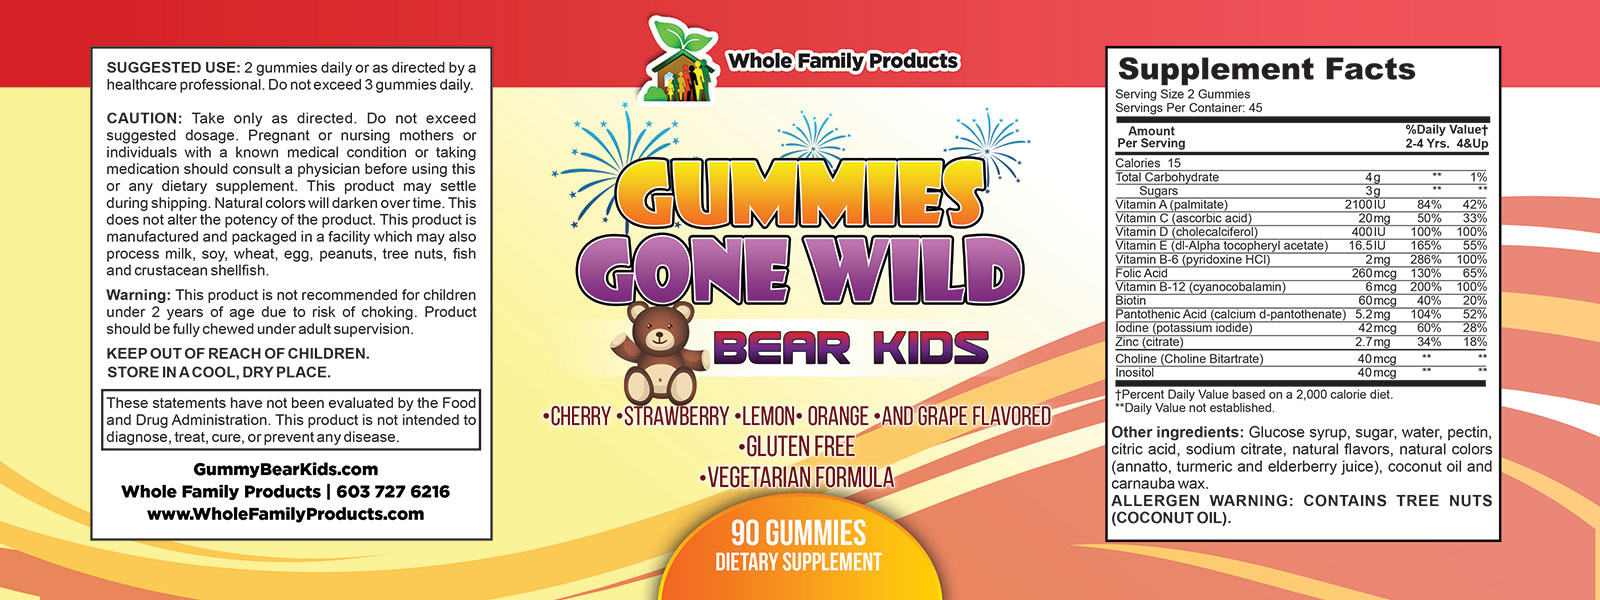 Gummies Gone Wild Bear Kids Label